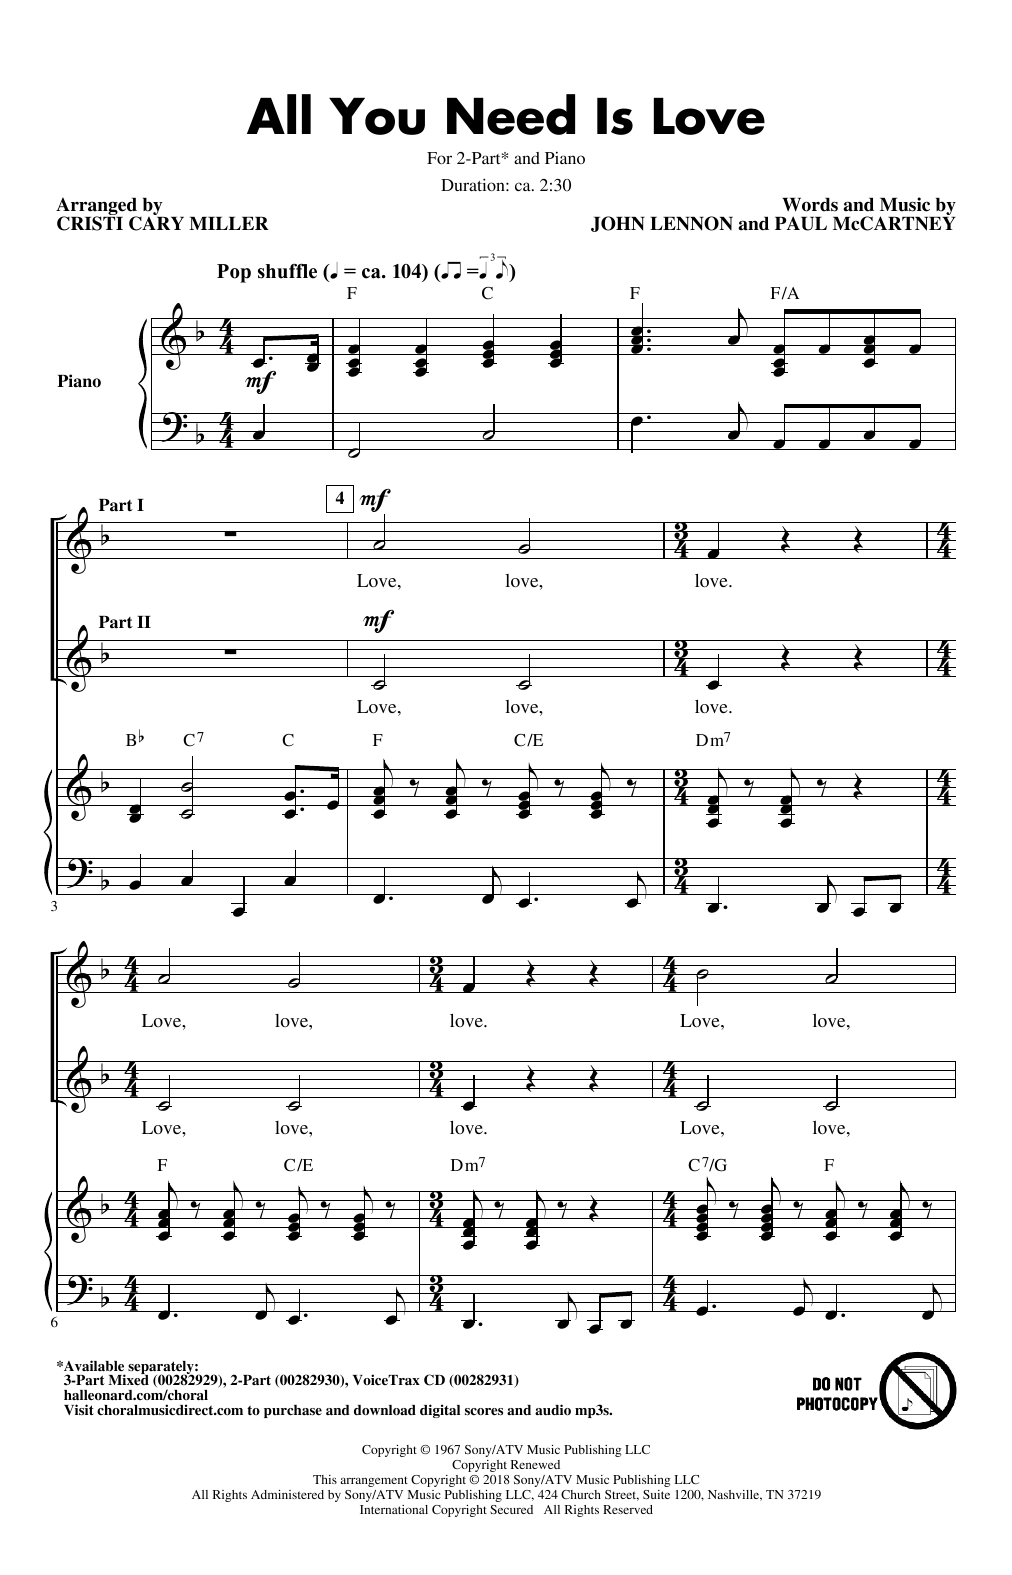 All You Need Is Love (arr  Cristi Cari Miller) by The Beatles 3-Part Mixed  Choir Digital Sheet Music